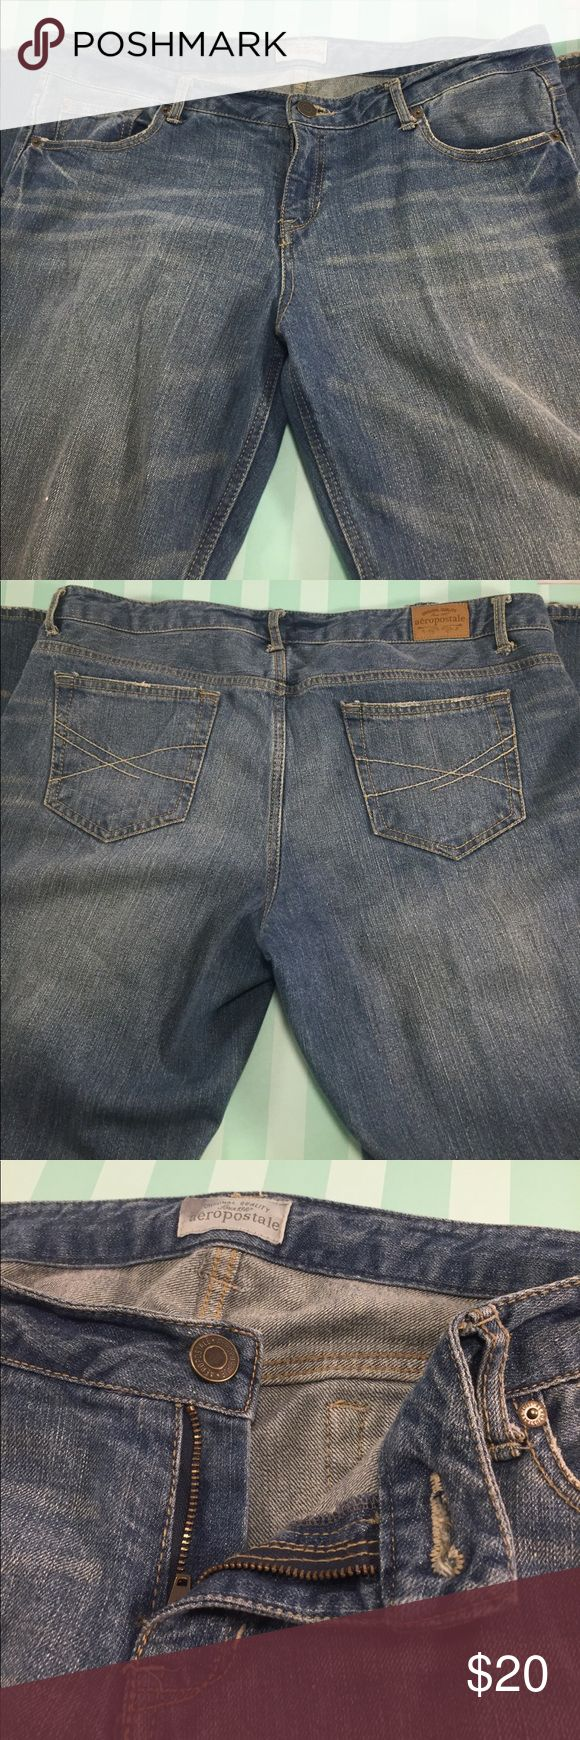 "AEROPOSTALE ""Hailey"" Flare Antique Wash Blue Jeans AEROPOSTALE ""Hailey"" Flare Antique Wash Blue Jeans in ladies size 13/14 long. 99% cotton, 1% spandex. Antique brown wash, whiskering, 3 front pockets, 2 back pockets, zip & button closure, & contrast stitching. Moderate wear to hems including fraying. All other signs of wear are original & intentional. Other than hems, these are in very nice preowned condition. Inseam is 35"". Overall 44"" top to bottom. Orig. $54. Aeropostale Jeans Flare…"